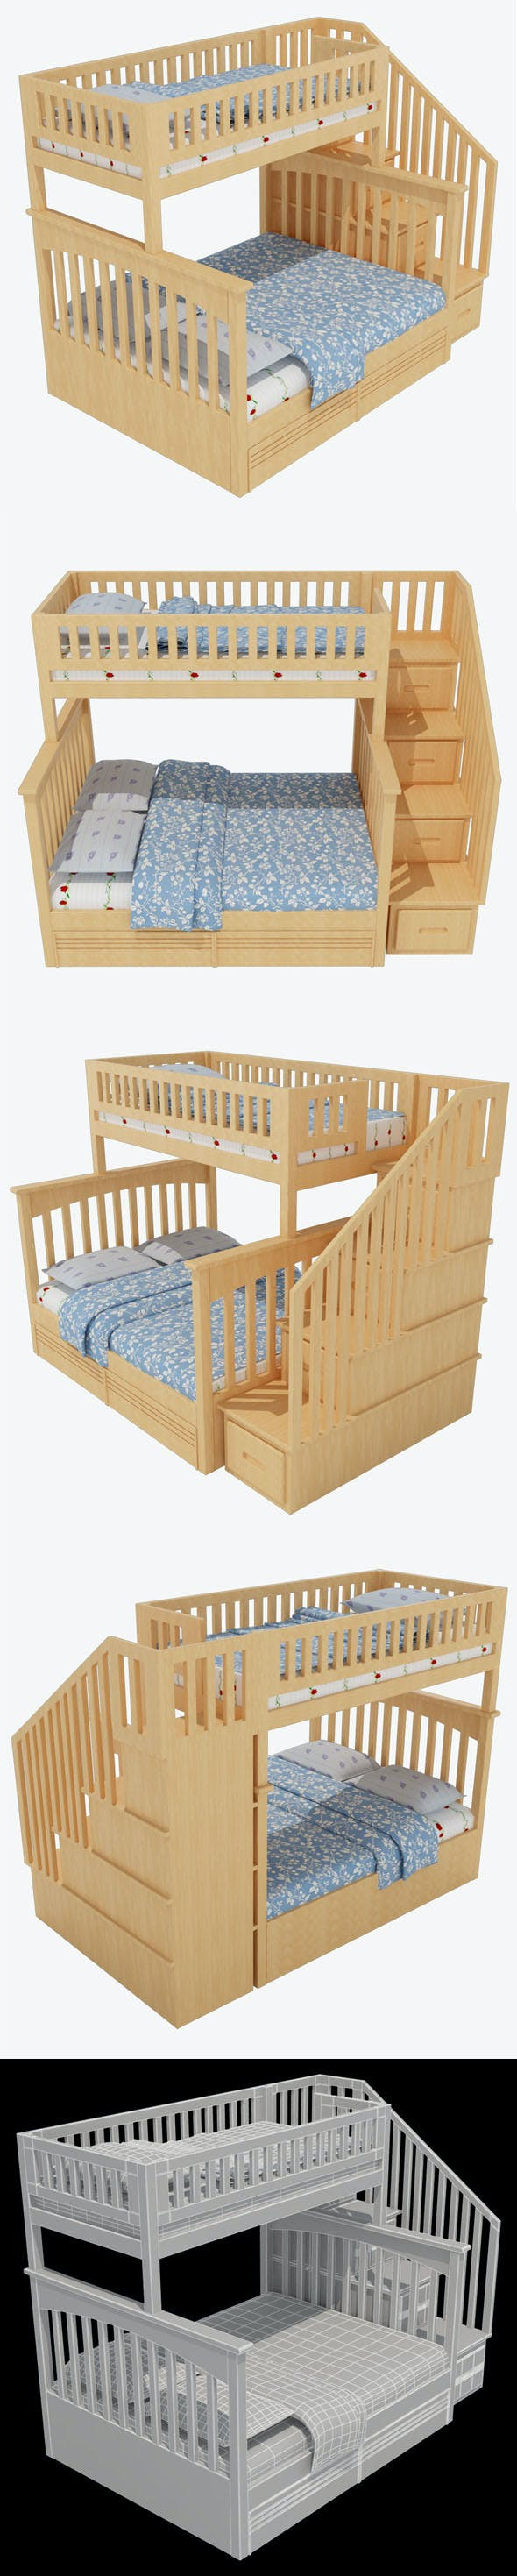 Child Bed_2 - 3DOcean Item for Sale